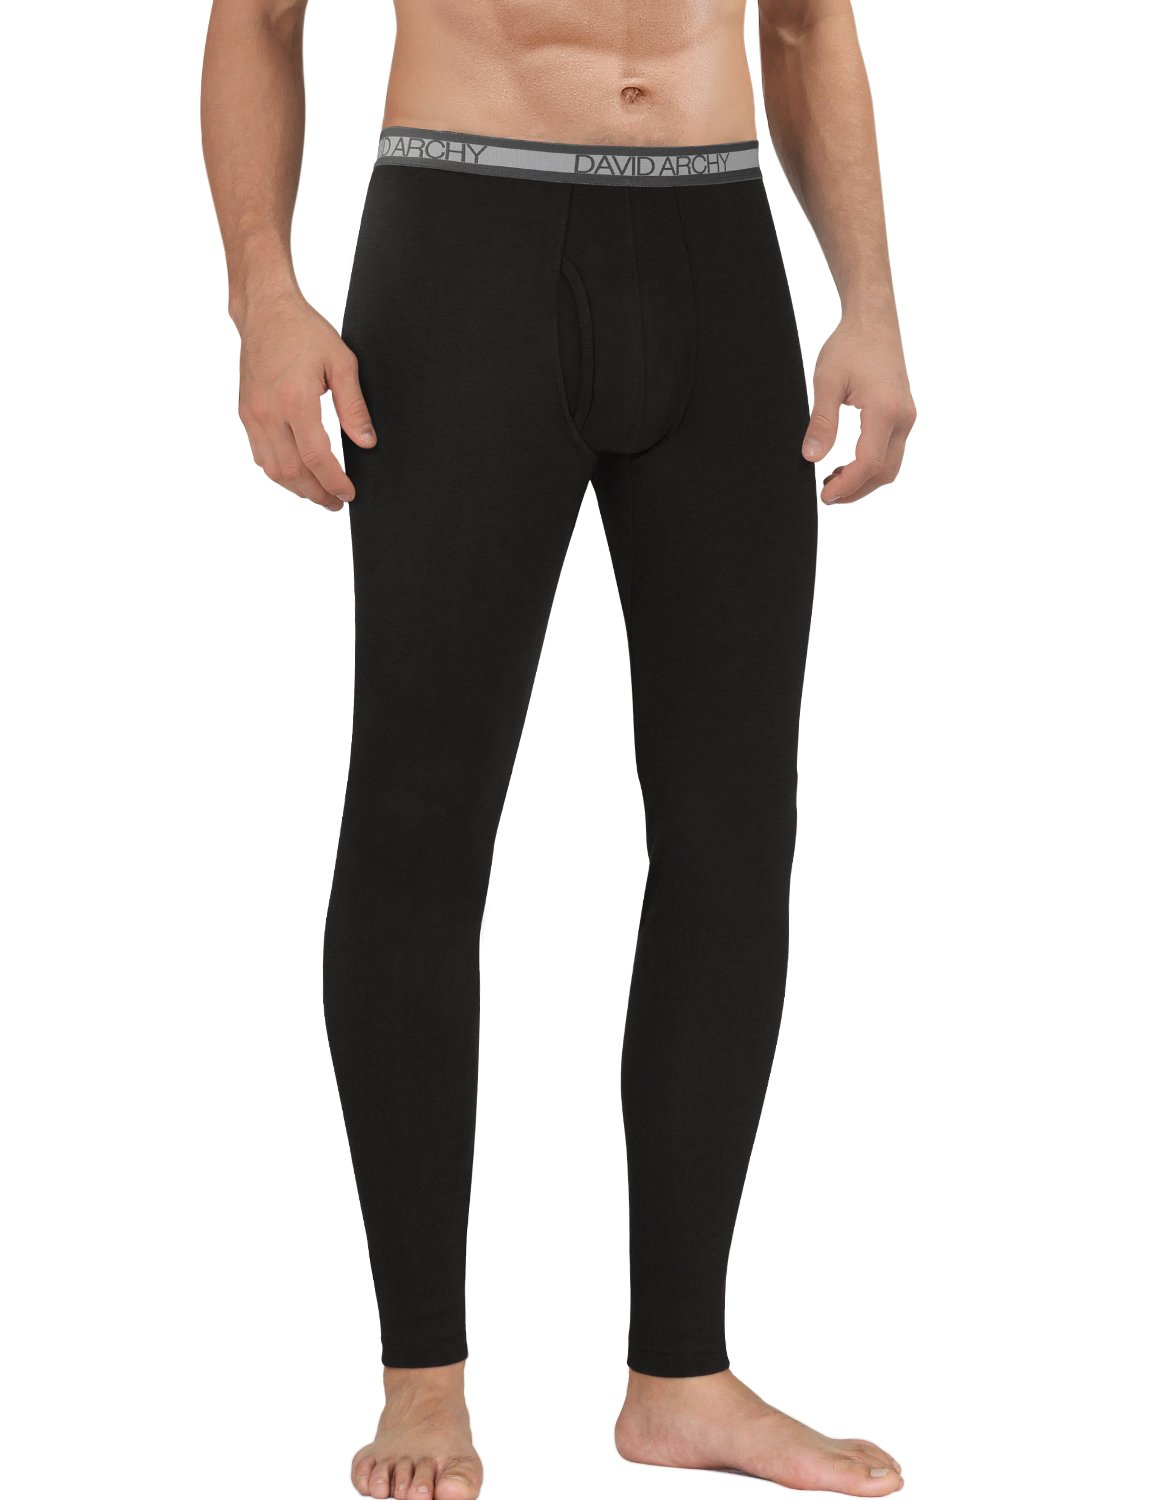 David Archy Men's Fleece Lined Base Layer Thermal Bottom with Fly(L,Black)